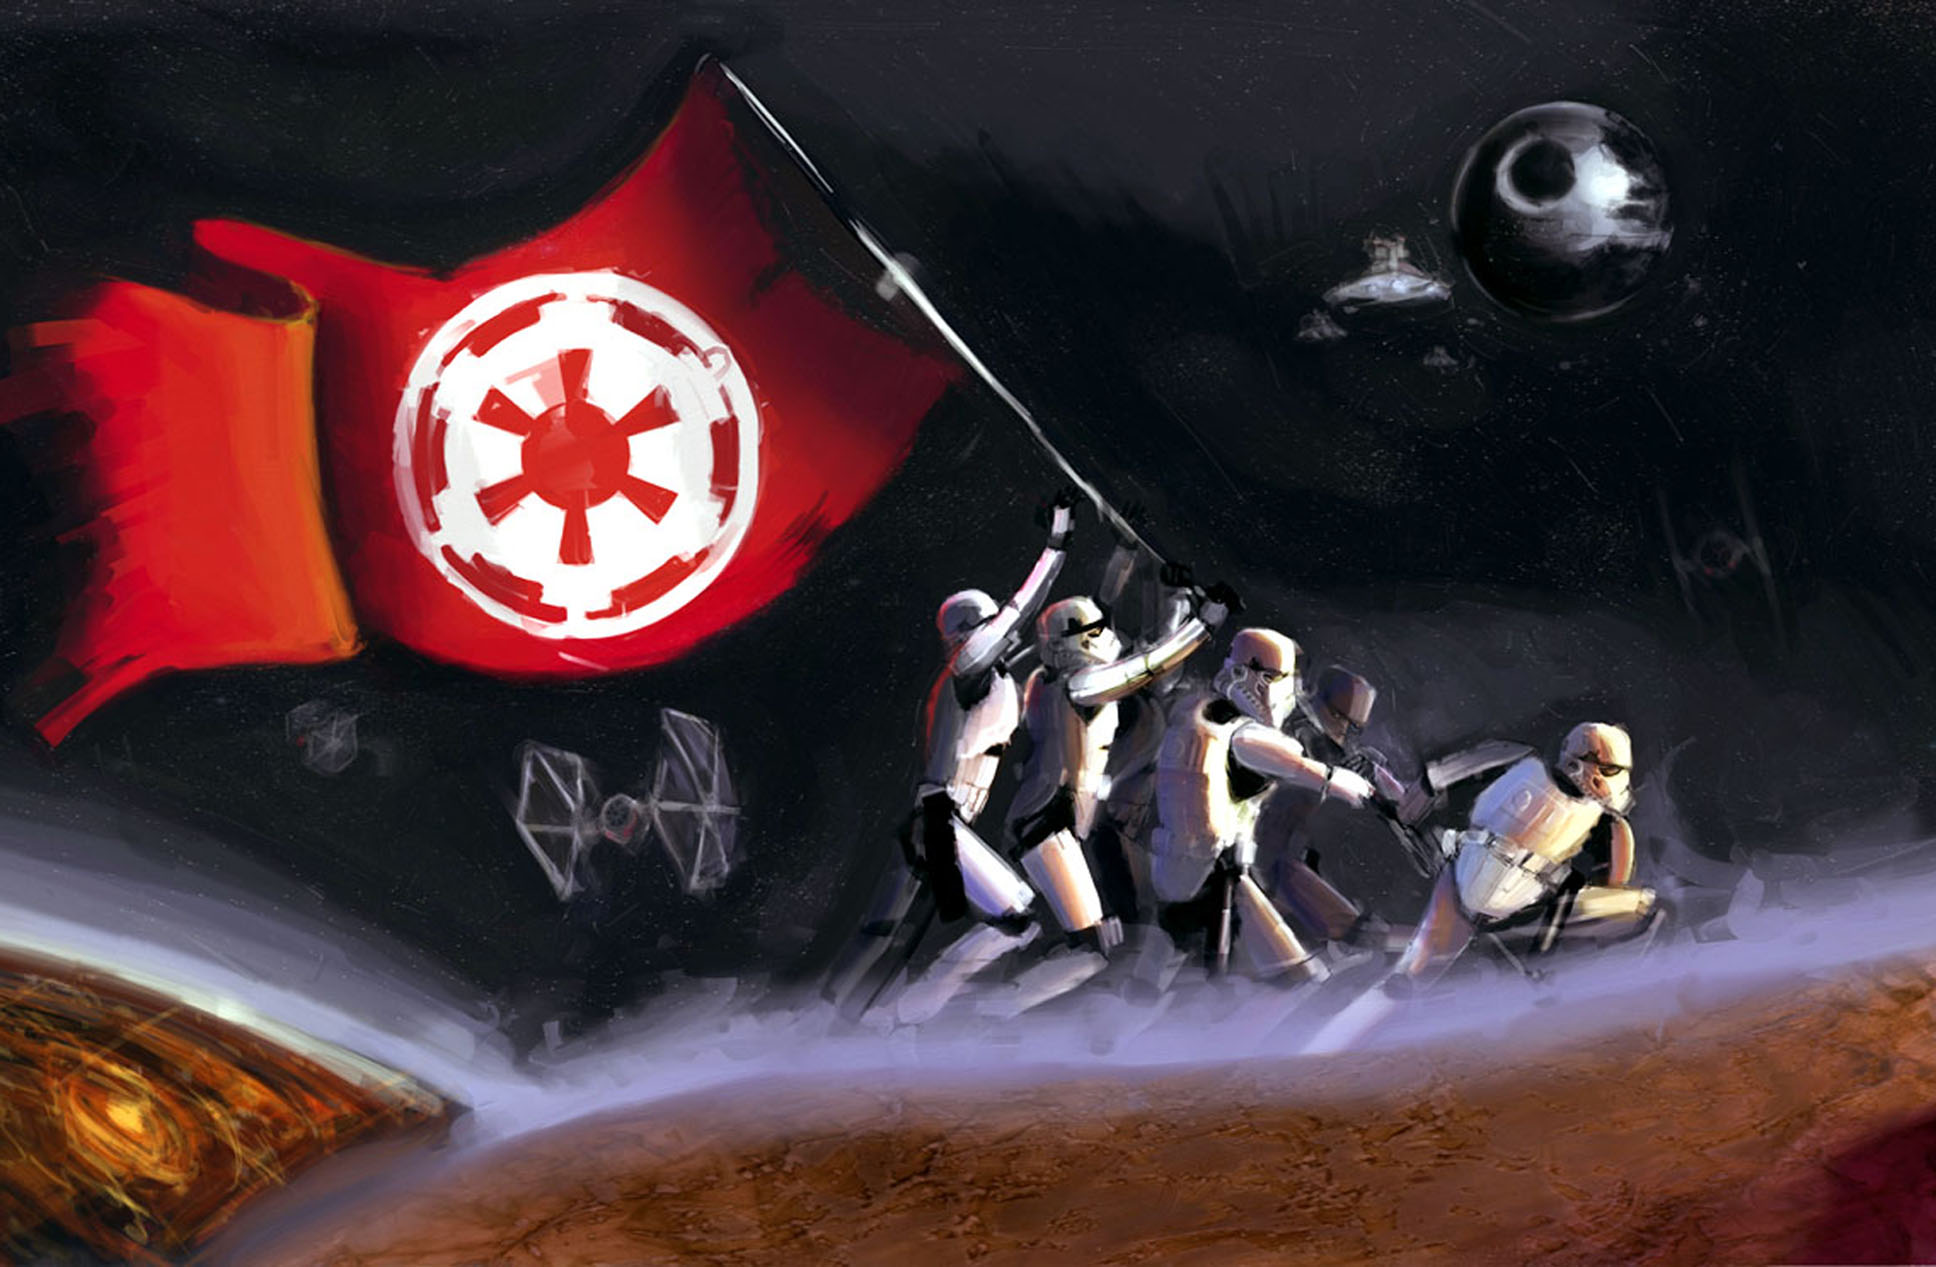 Stormtroopers Star Wars Flag Drawing on wallpaper 58